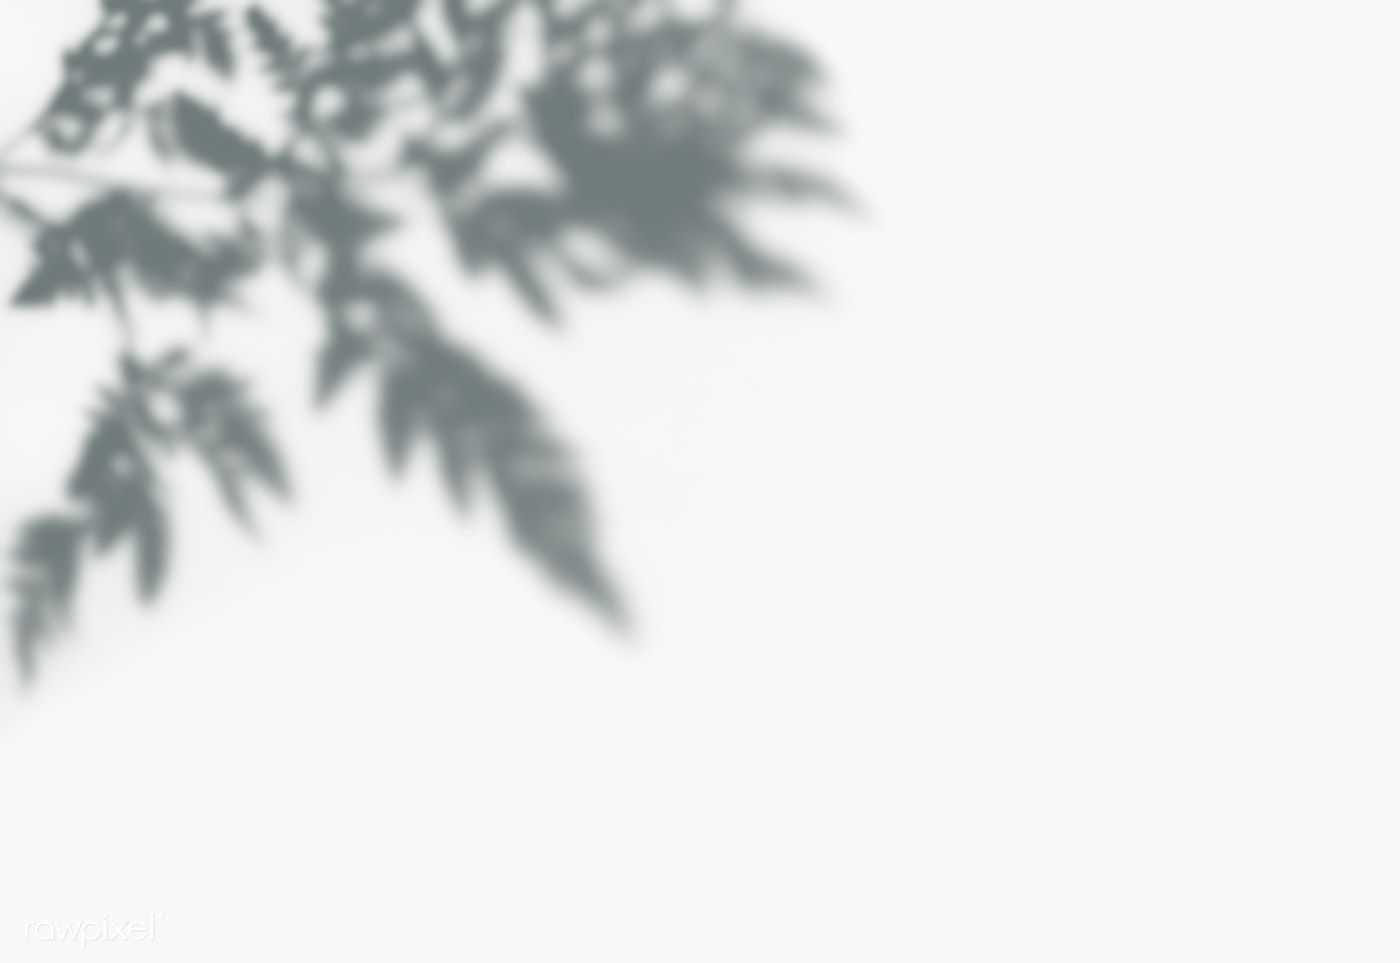 Shadow Of Leaves On A Wall Free Image By Rawpixel Com Shadow Shadow Tree Stock Images Free